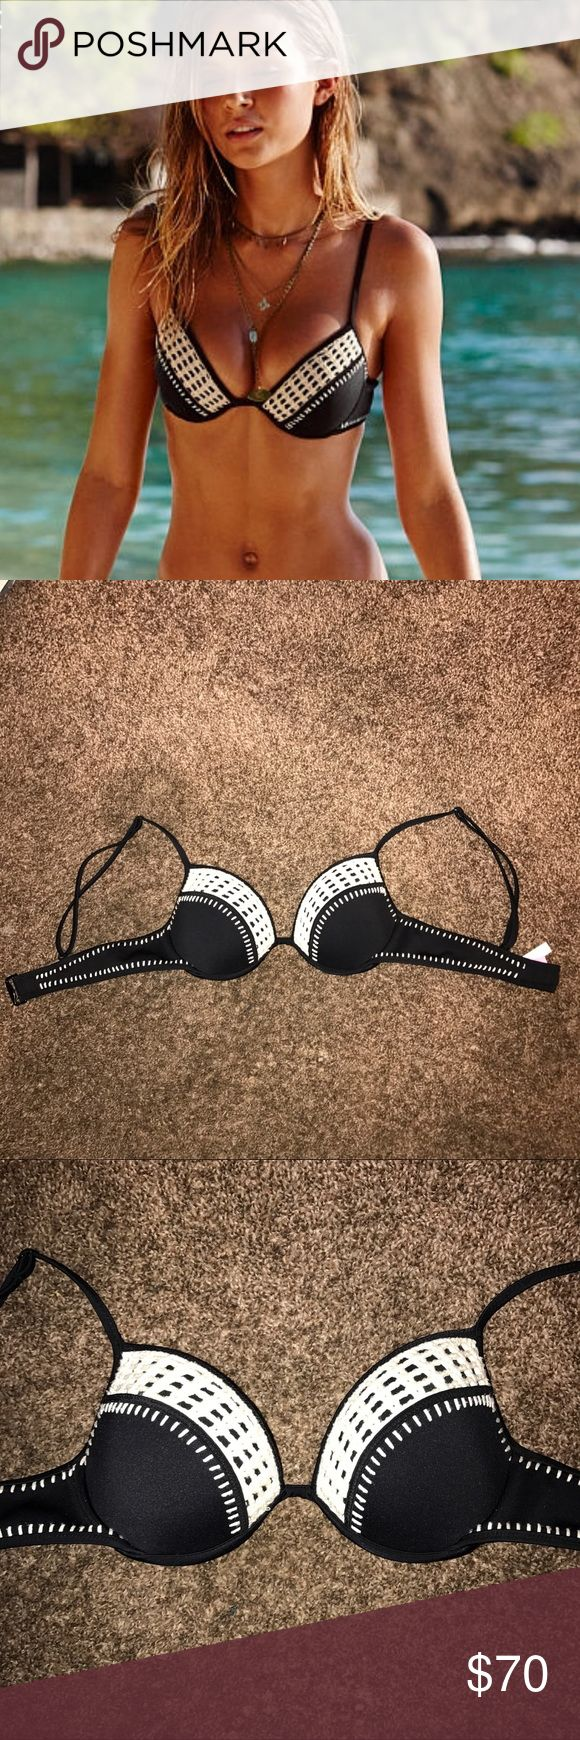 VS Swim Crochet Top Victoria's Secret Surf Bikini crochet top. Size 32 C! NEVER worn, unfortunately it doesn't fit me. Great buy, as the VS Swim line is being discontinued 💔. Reasonable offers accepted! Victoria's Secret Swim Bikinis